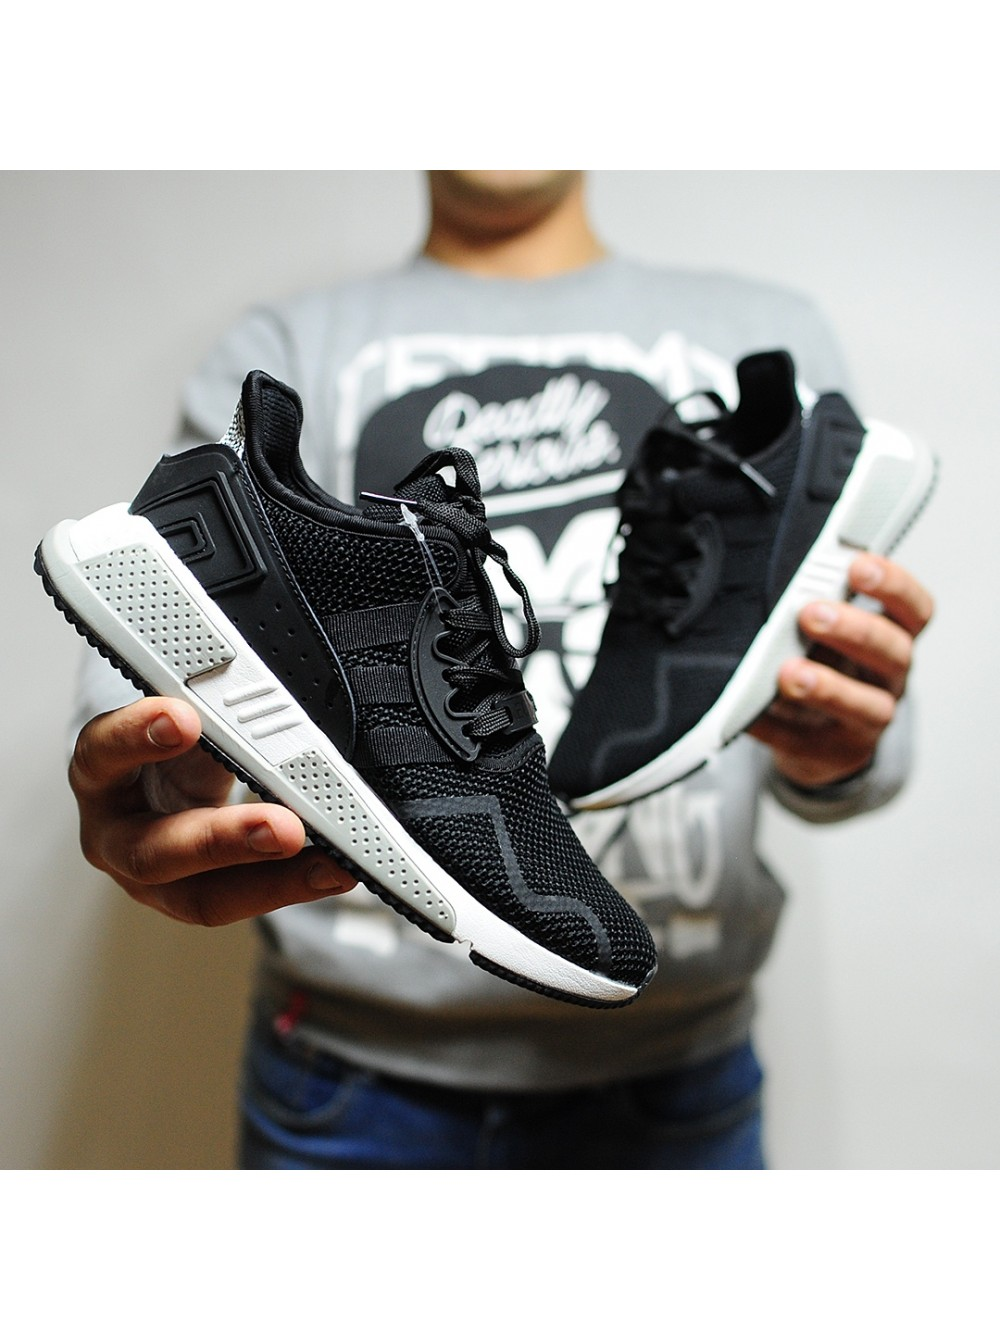 buy online 8cb34 02288 Кроссовки Adidas EQT Cushion Adv / 91-17 Black White